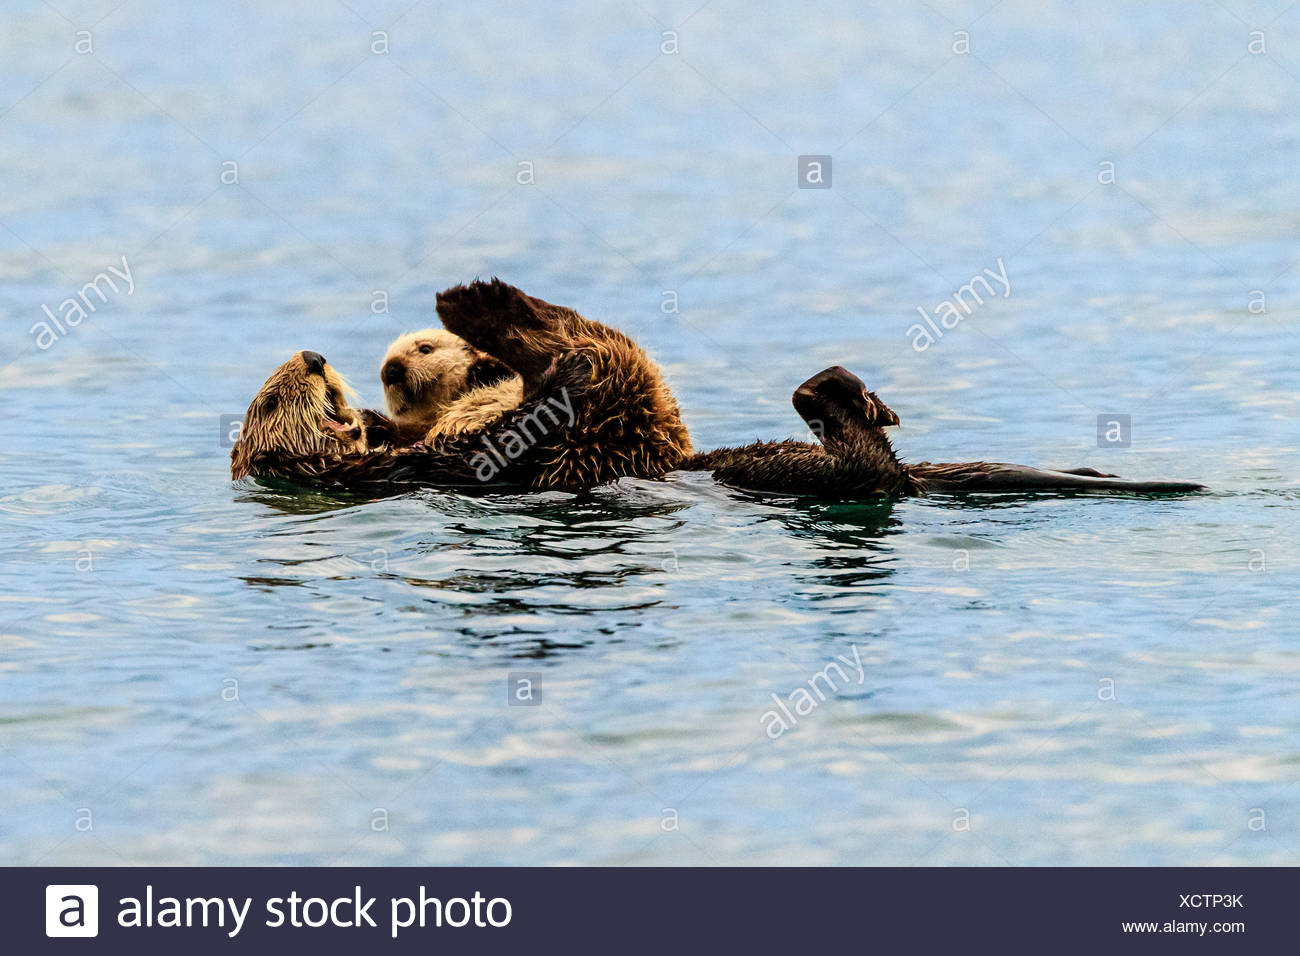 Sea otter, Enhydra lutris, mother and pup in Kachemak Bay. - Stock Image